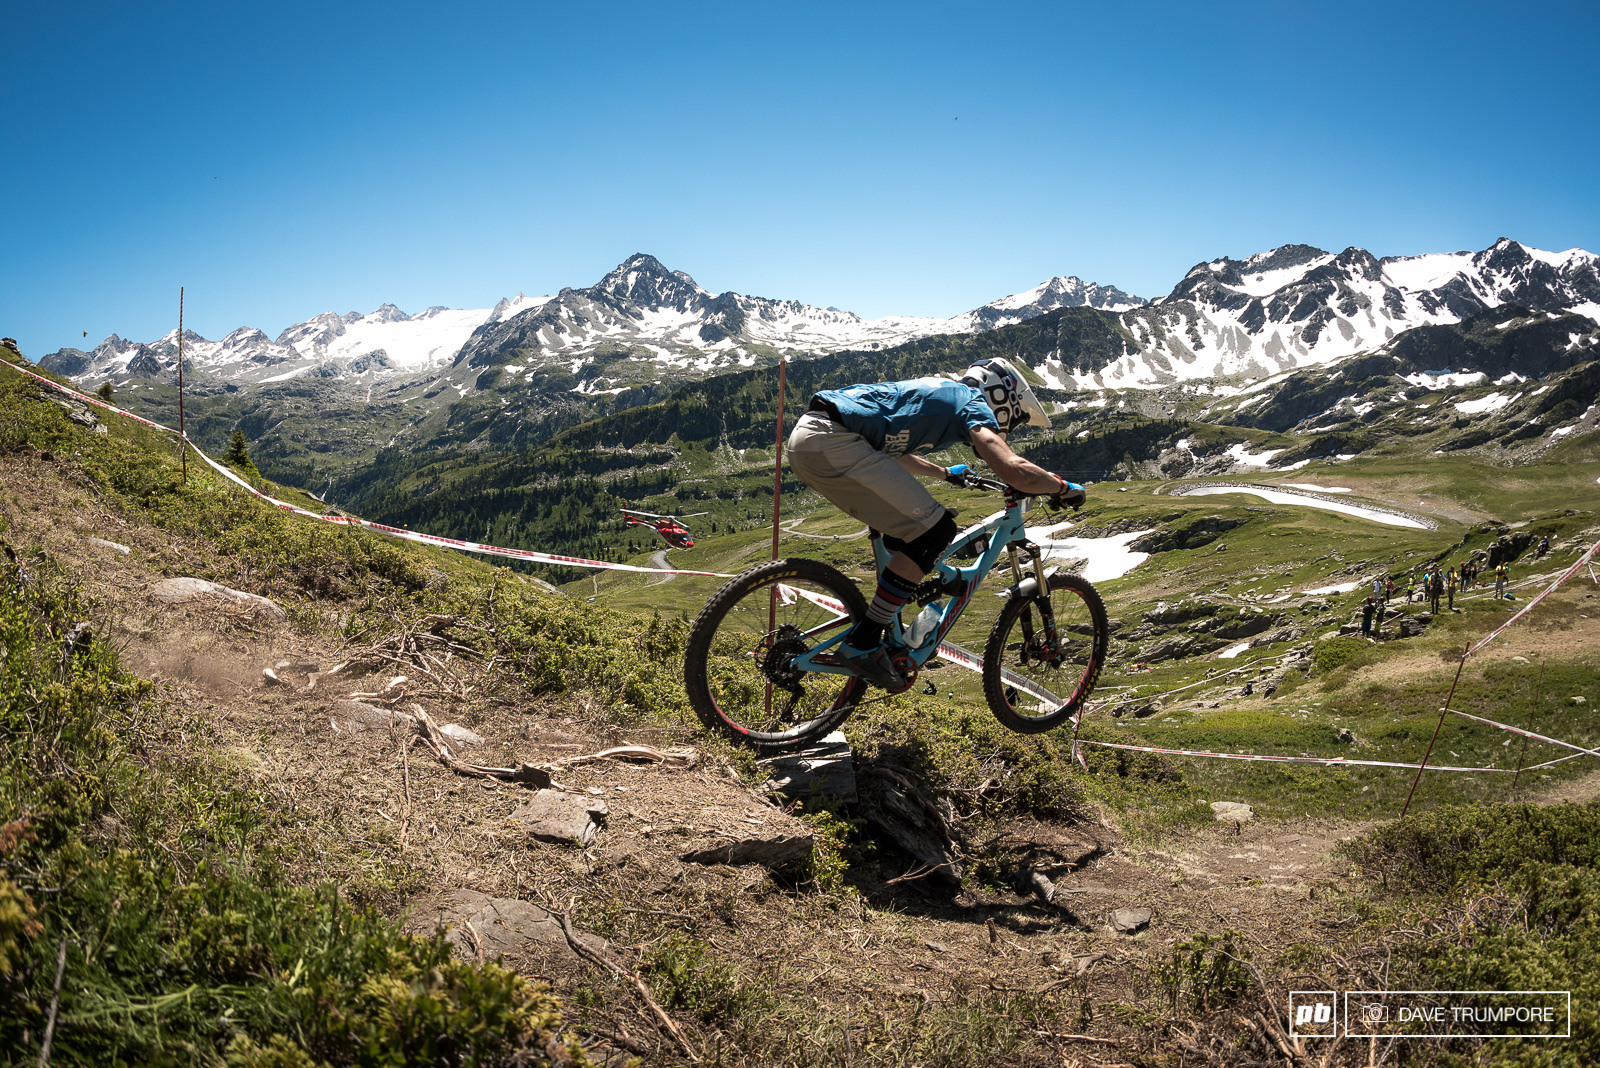 Robin Wallner has been flying a bit under the radar on the EWS circuit so far but after his 7th place finish in La Thuile we imagine people are gong to begin to take notice.